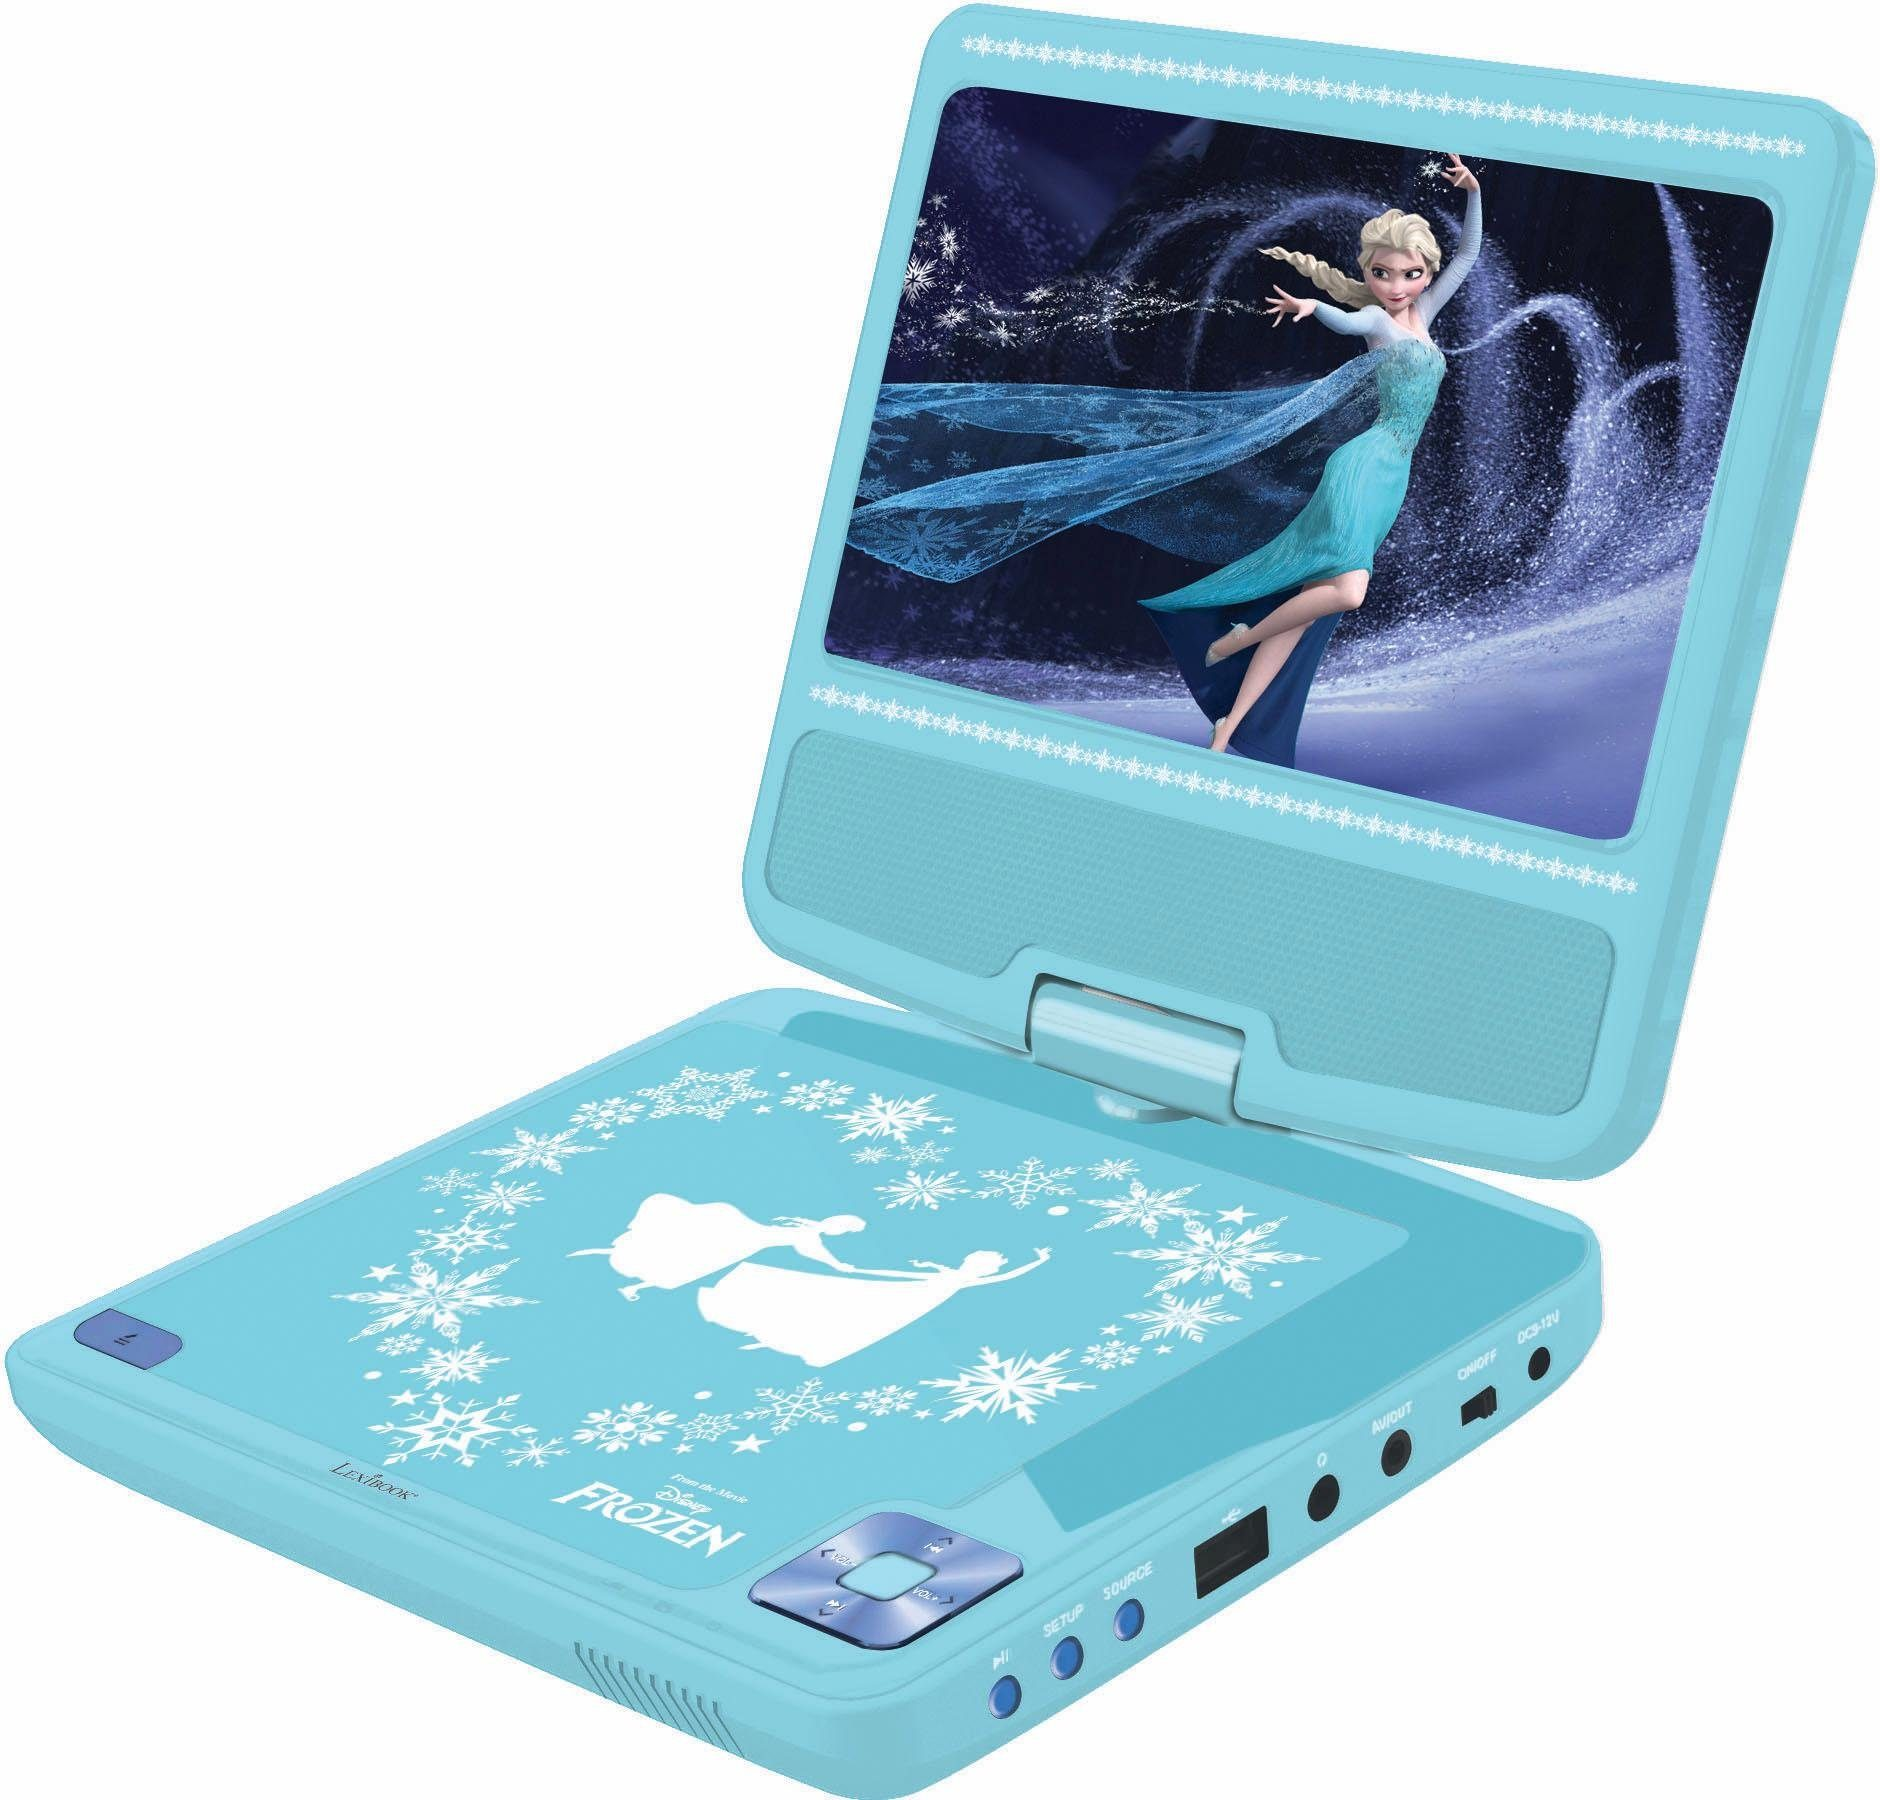 Lexibook Tragbarer DVD-Player, »Disney Frozen«